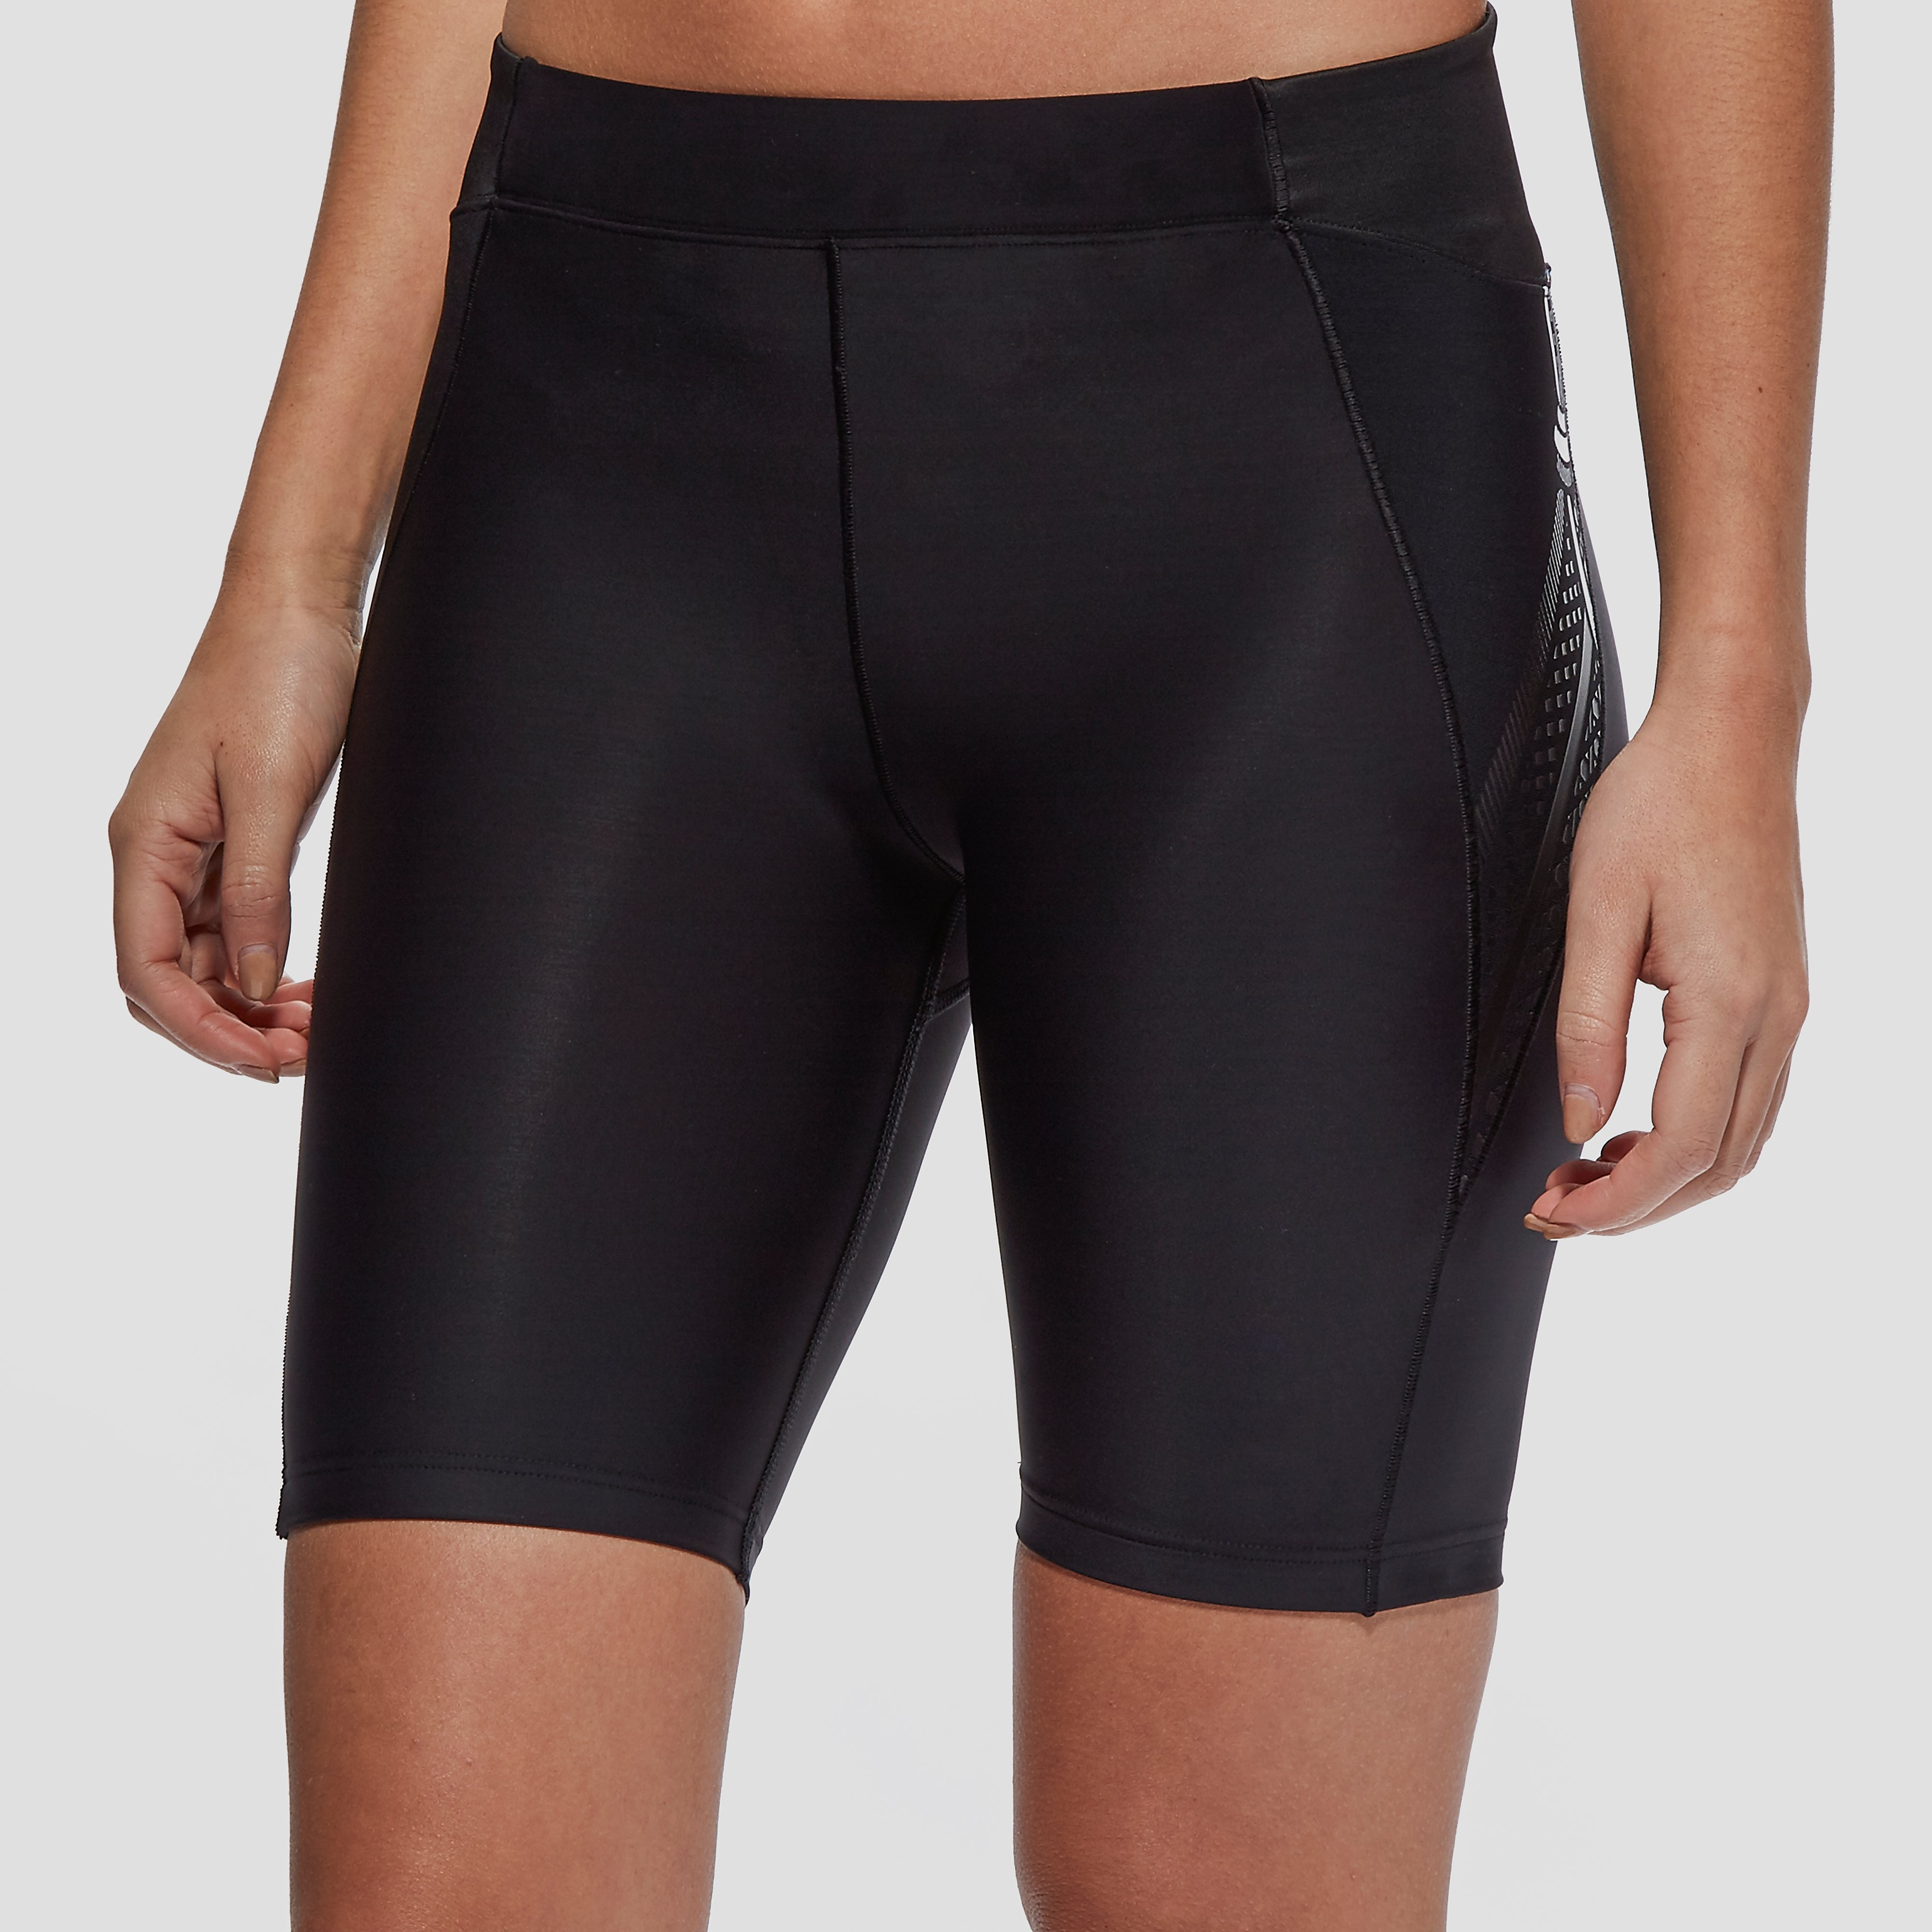 Skins A400 Women's Compression Half Tights